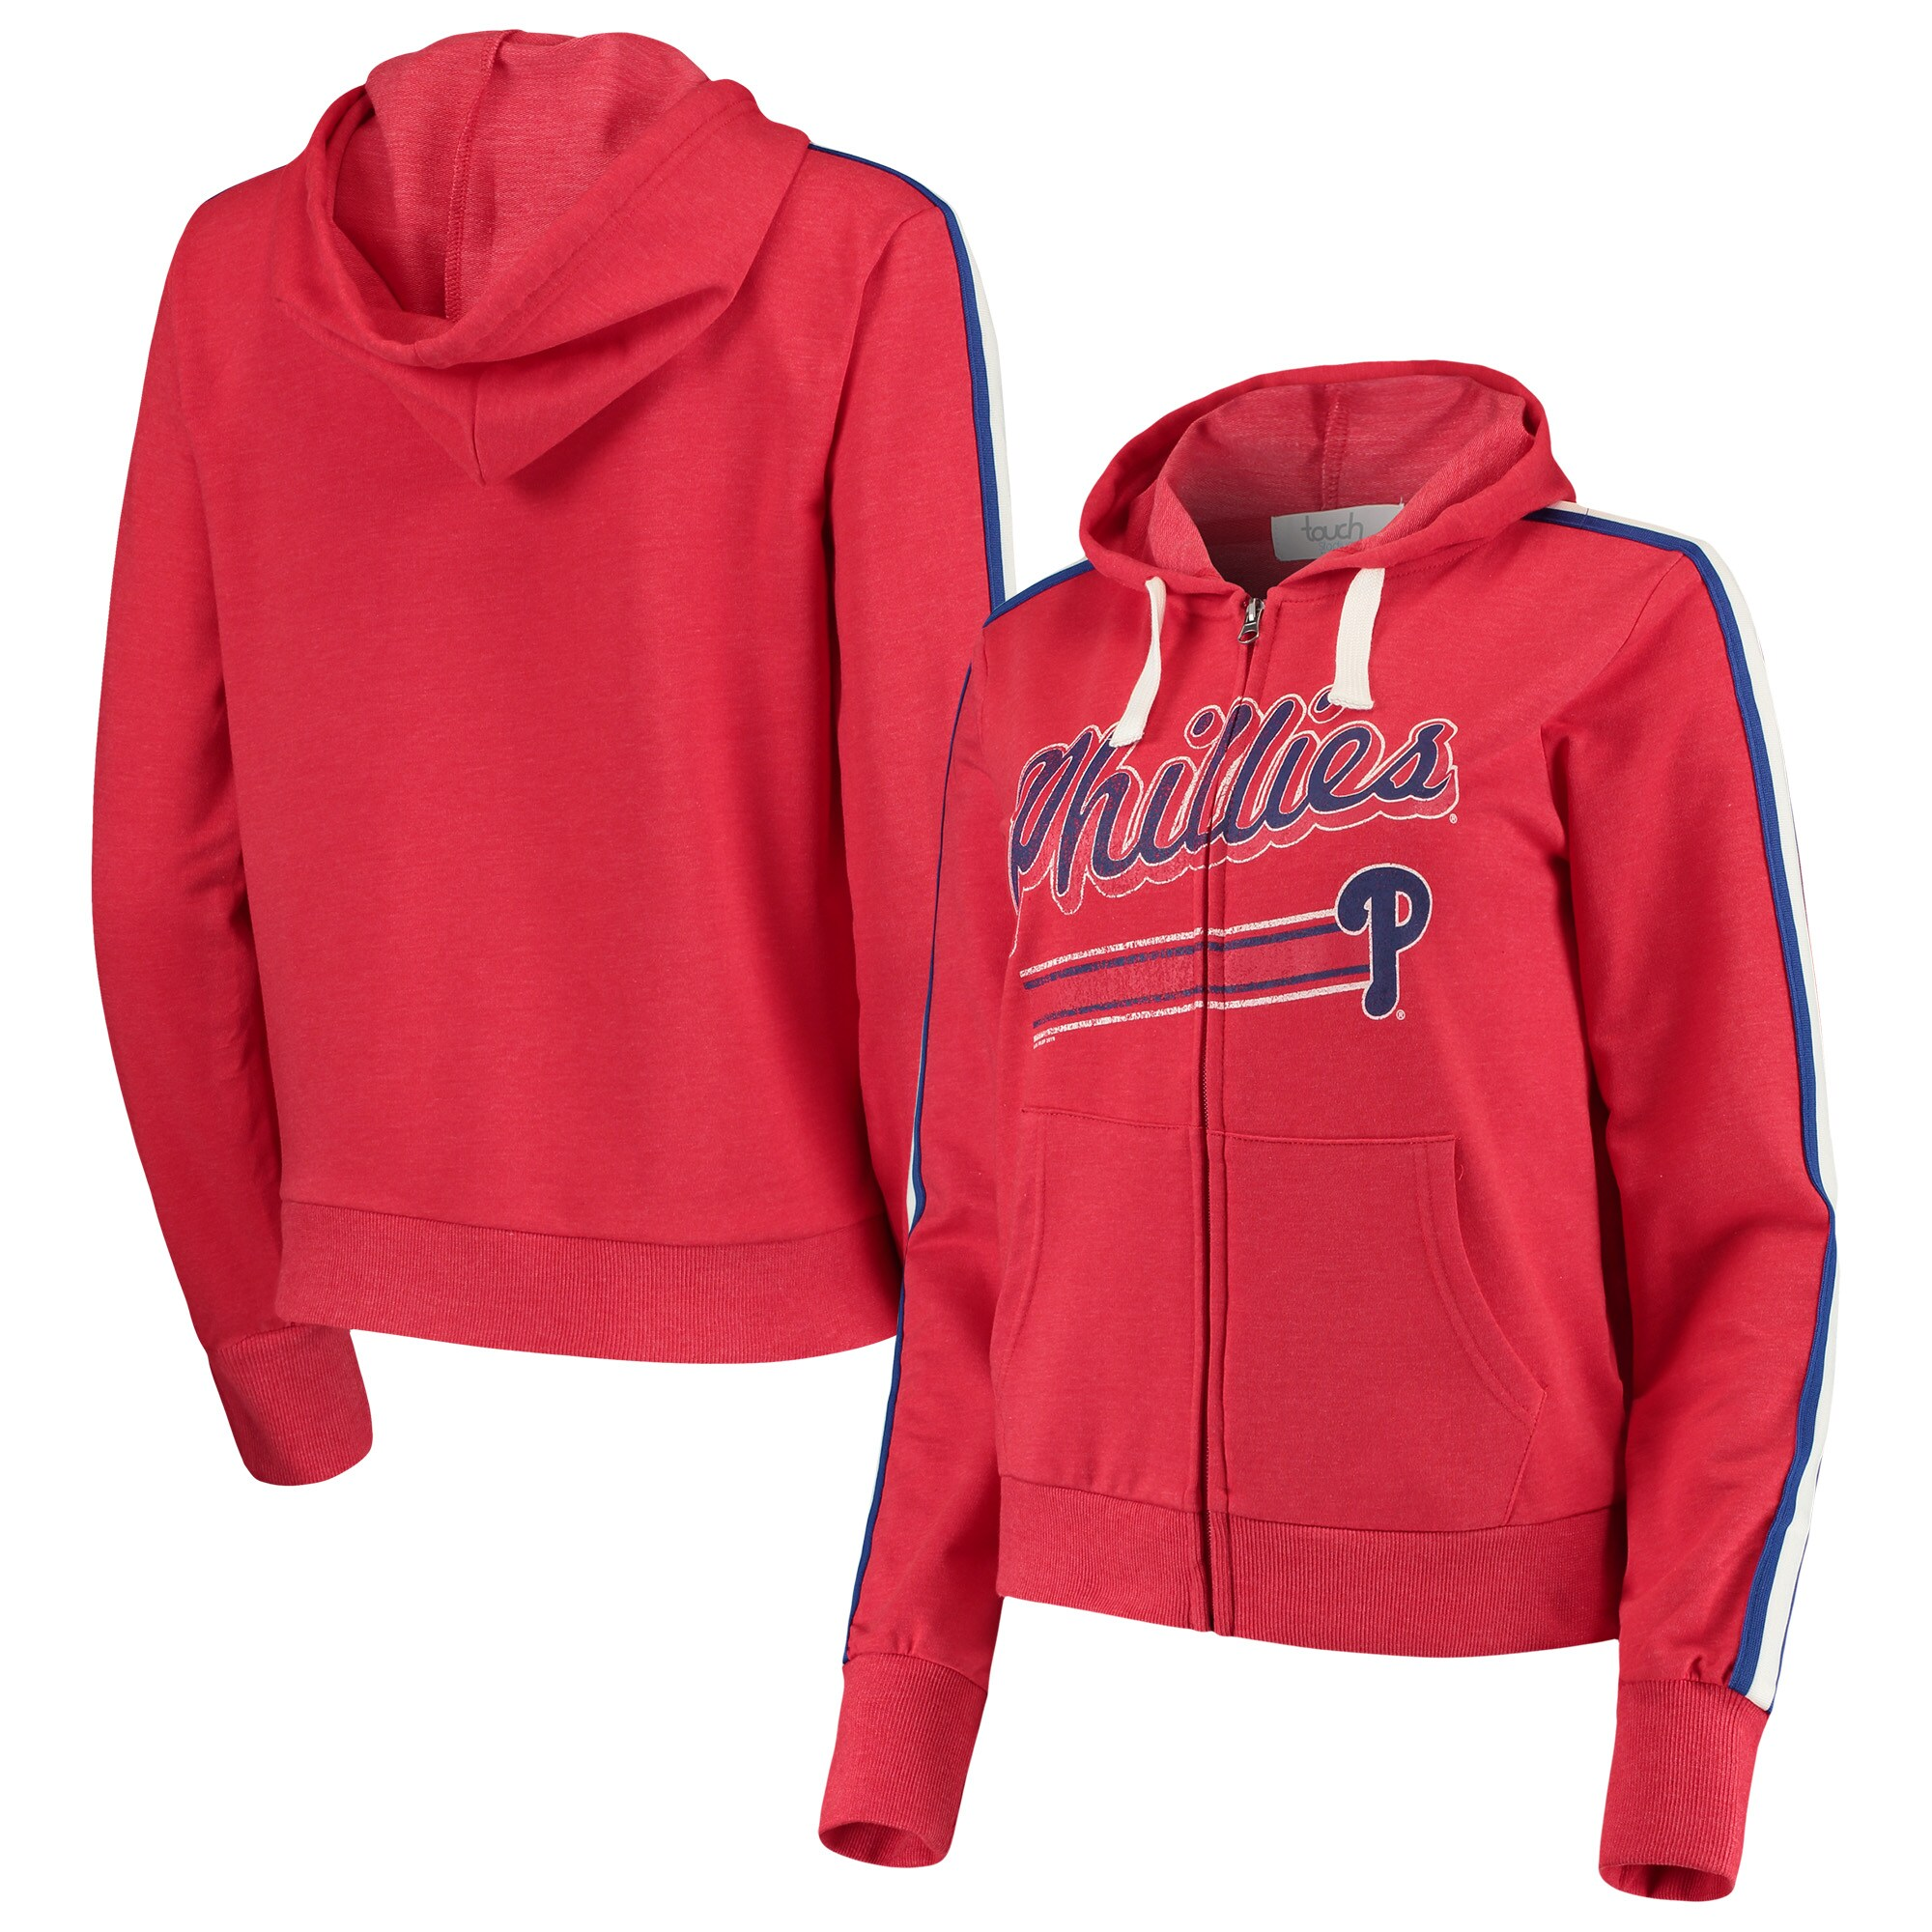 Philadelphia Phillies Touch by Alyssa Milano Women's Conference Full-Zip Hoodie - Red